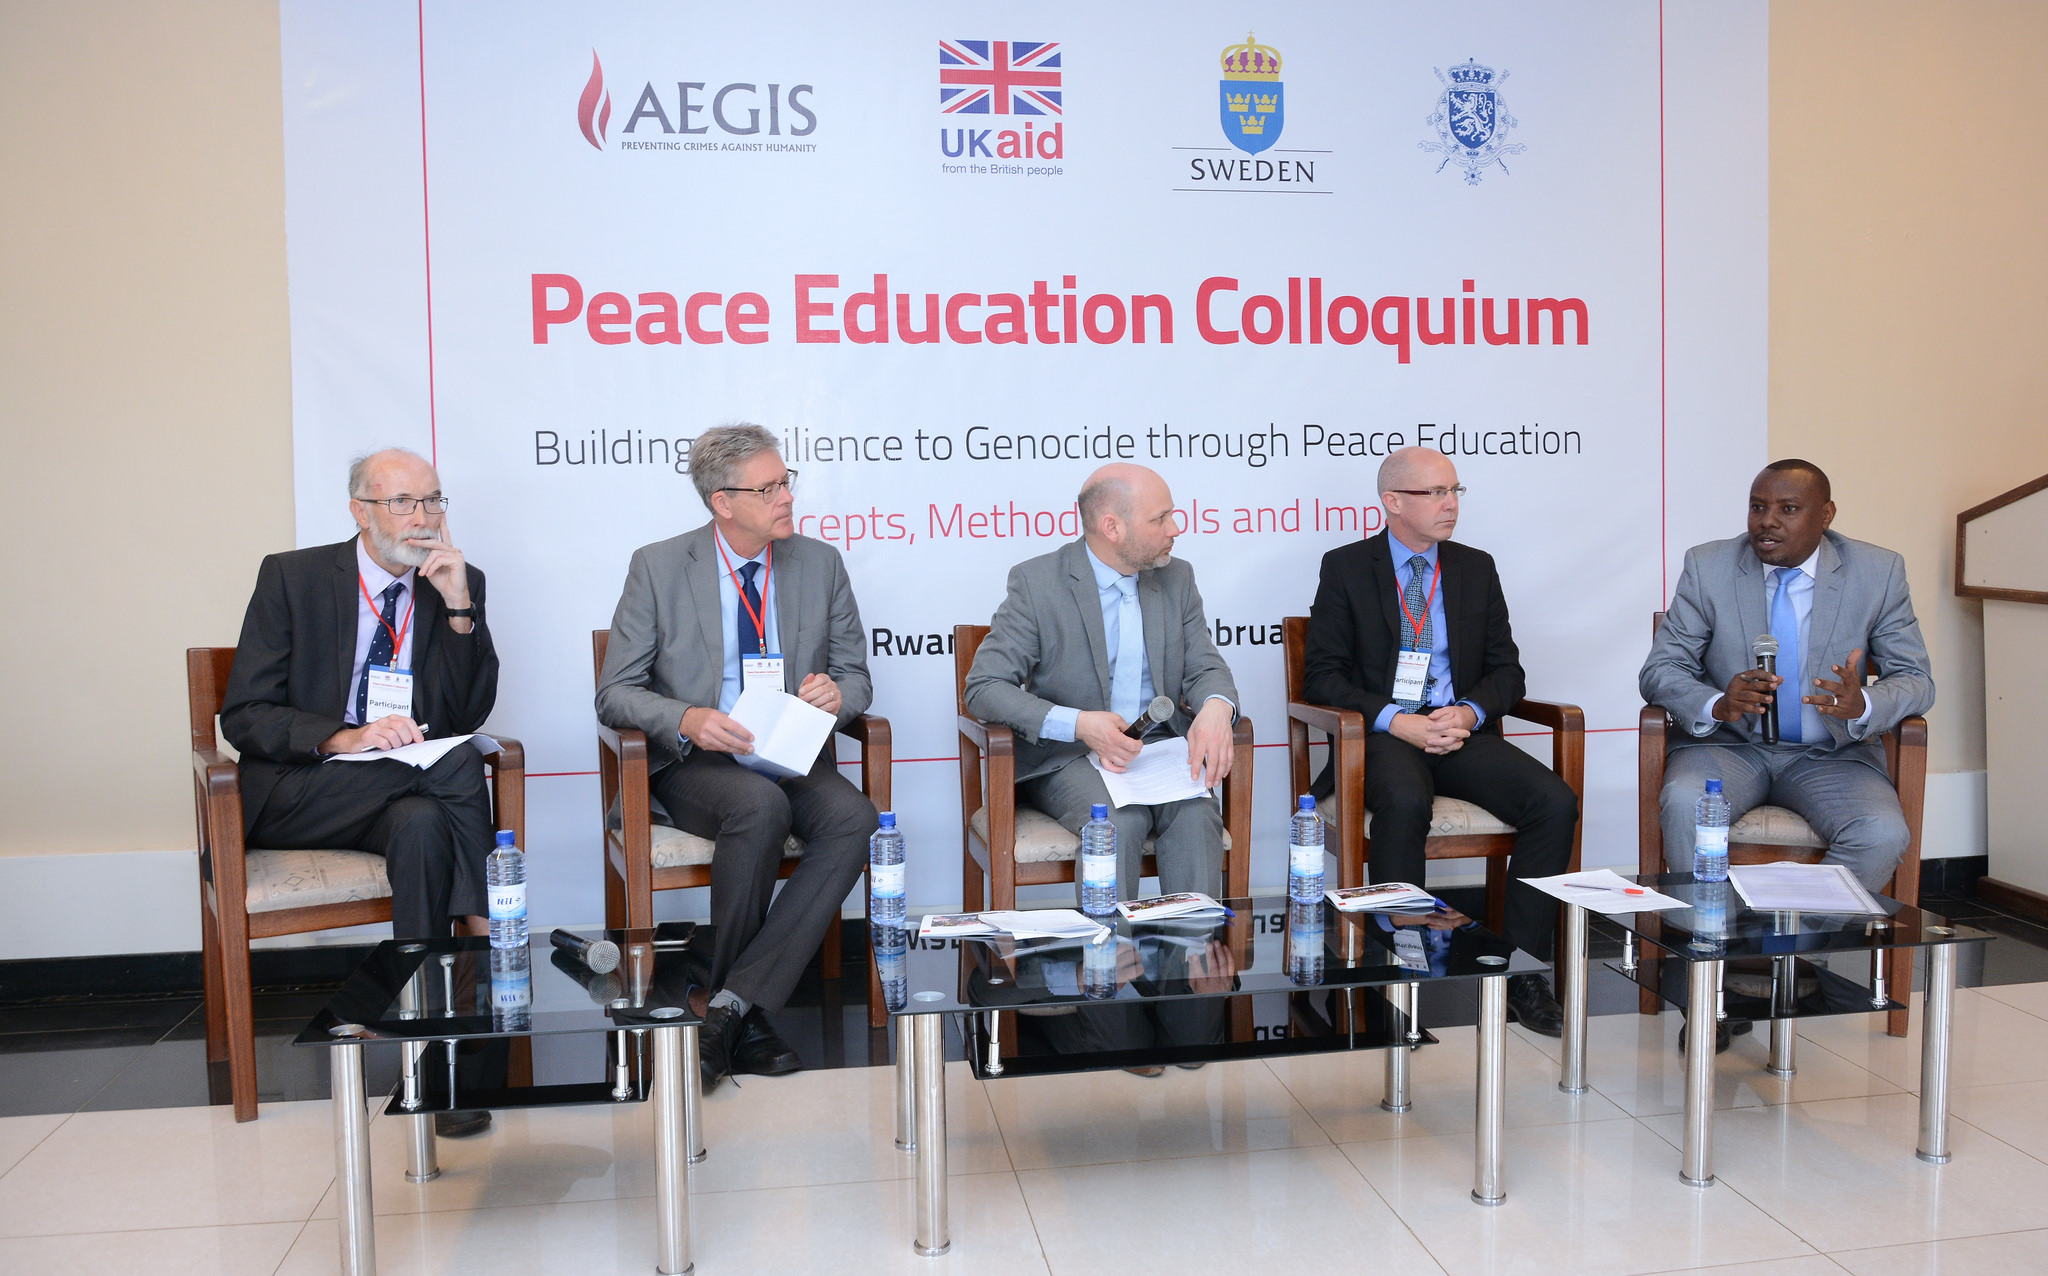 Peace Education Colloquium, Kigali Genocide Memorial, February 2017